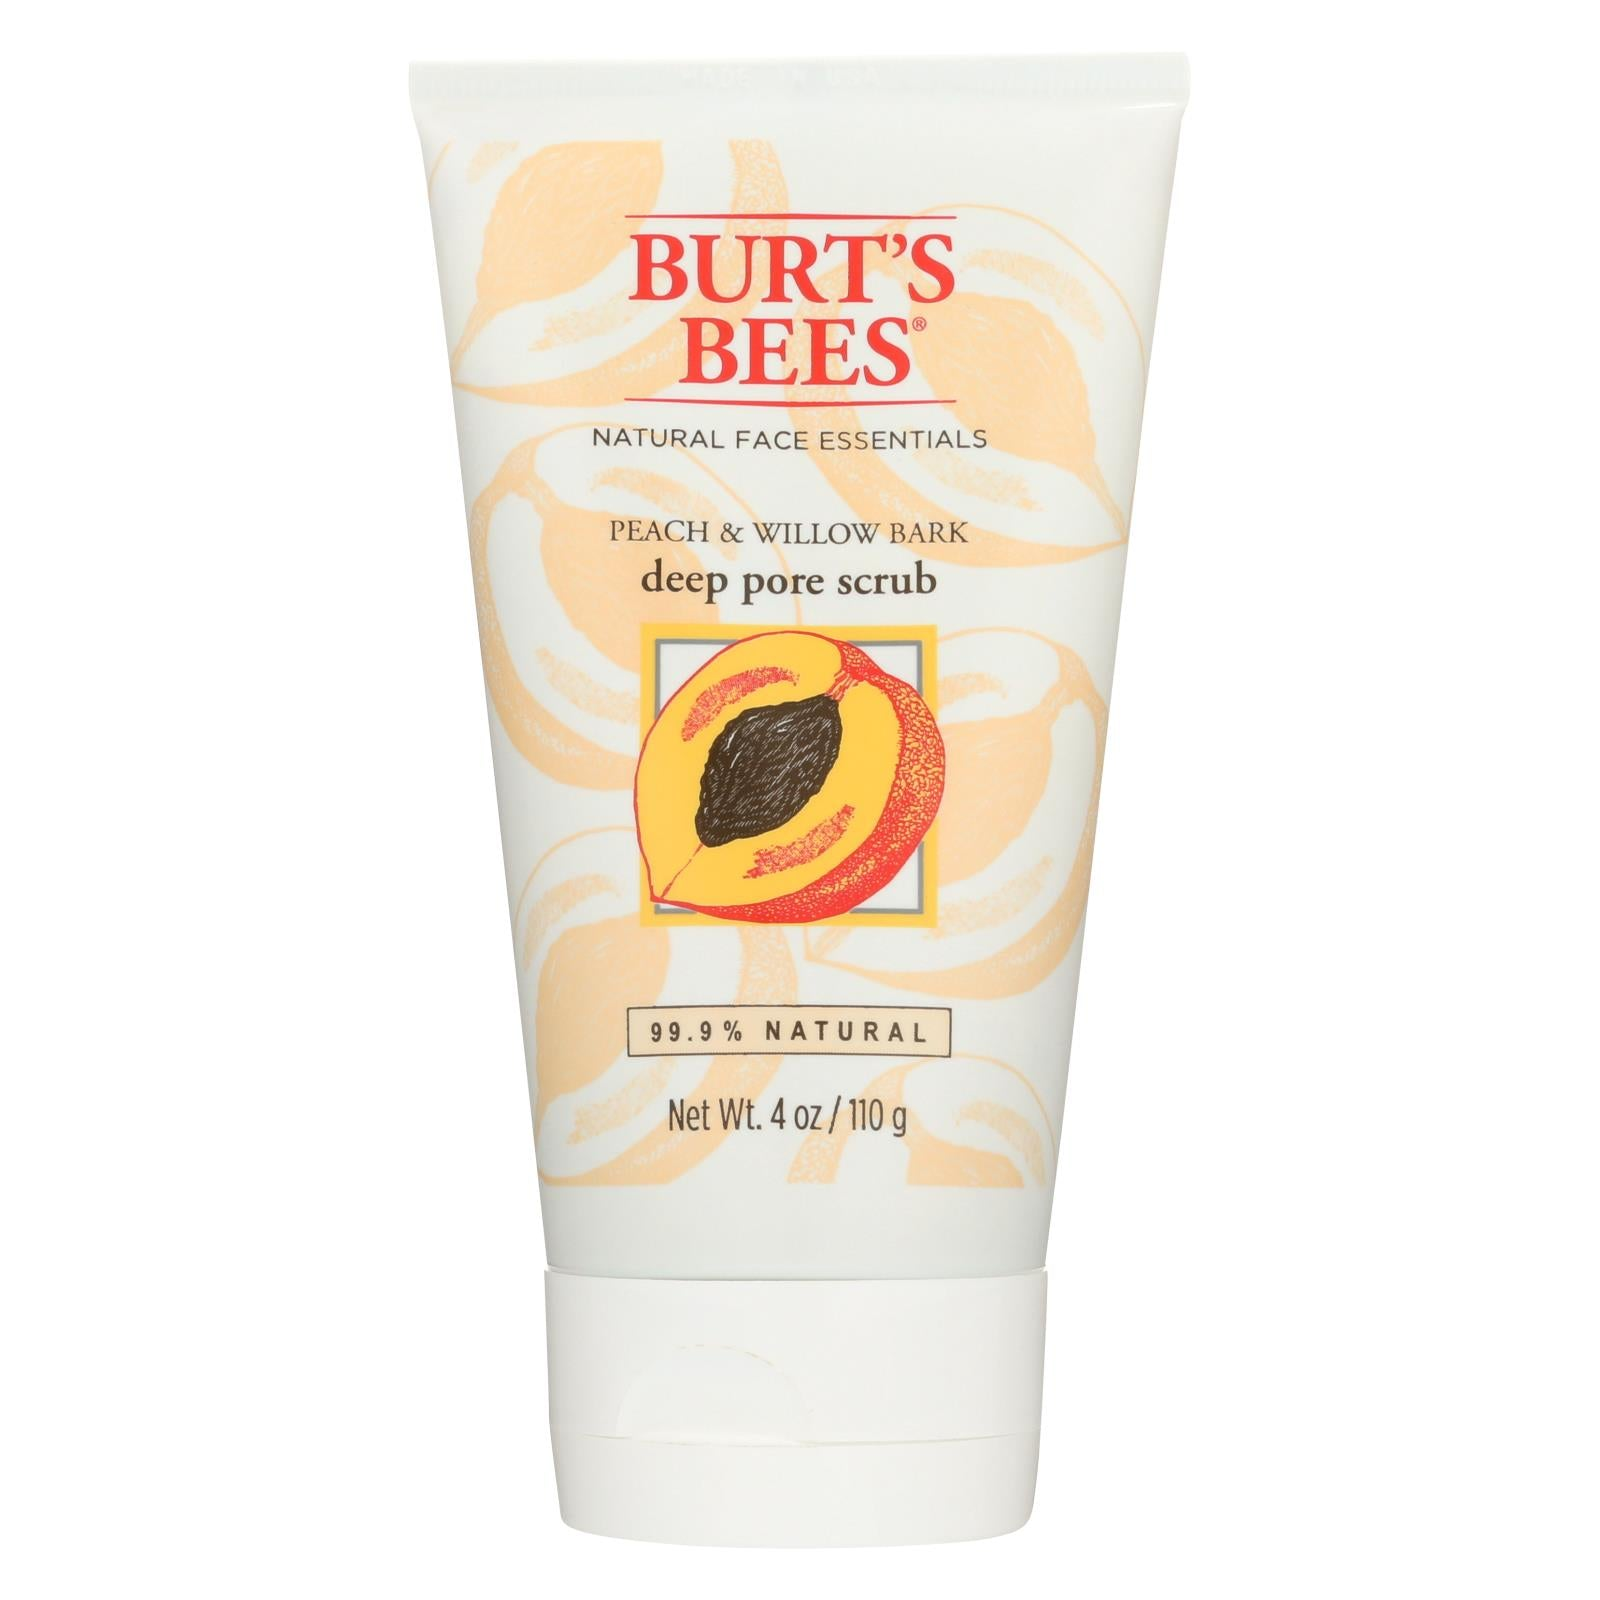 Buy Burts Bees Scrub - Pore - Peach & Willow Bark - 4 oz - Cleansers from Veroeco.com